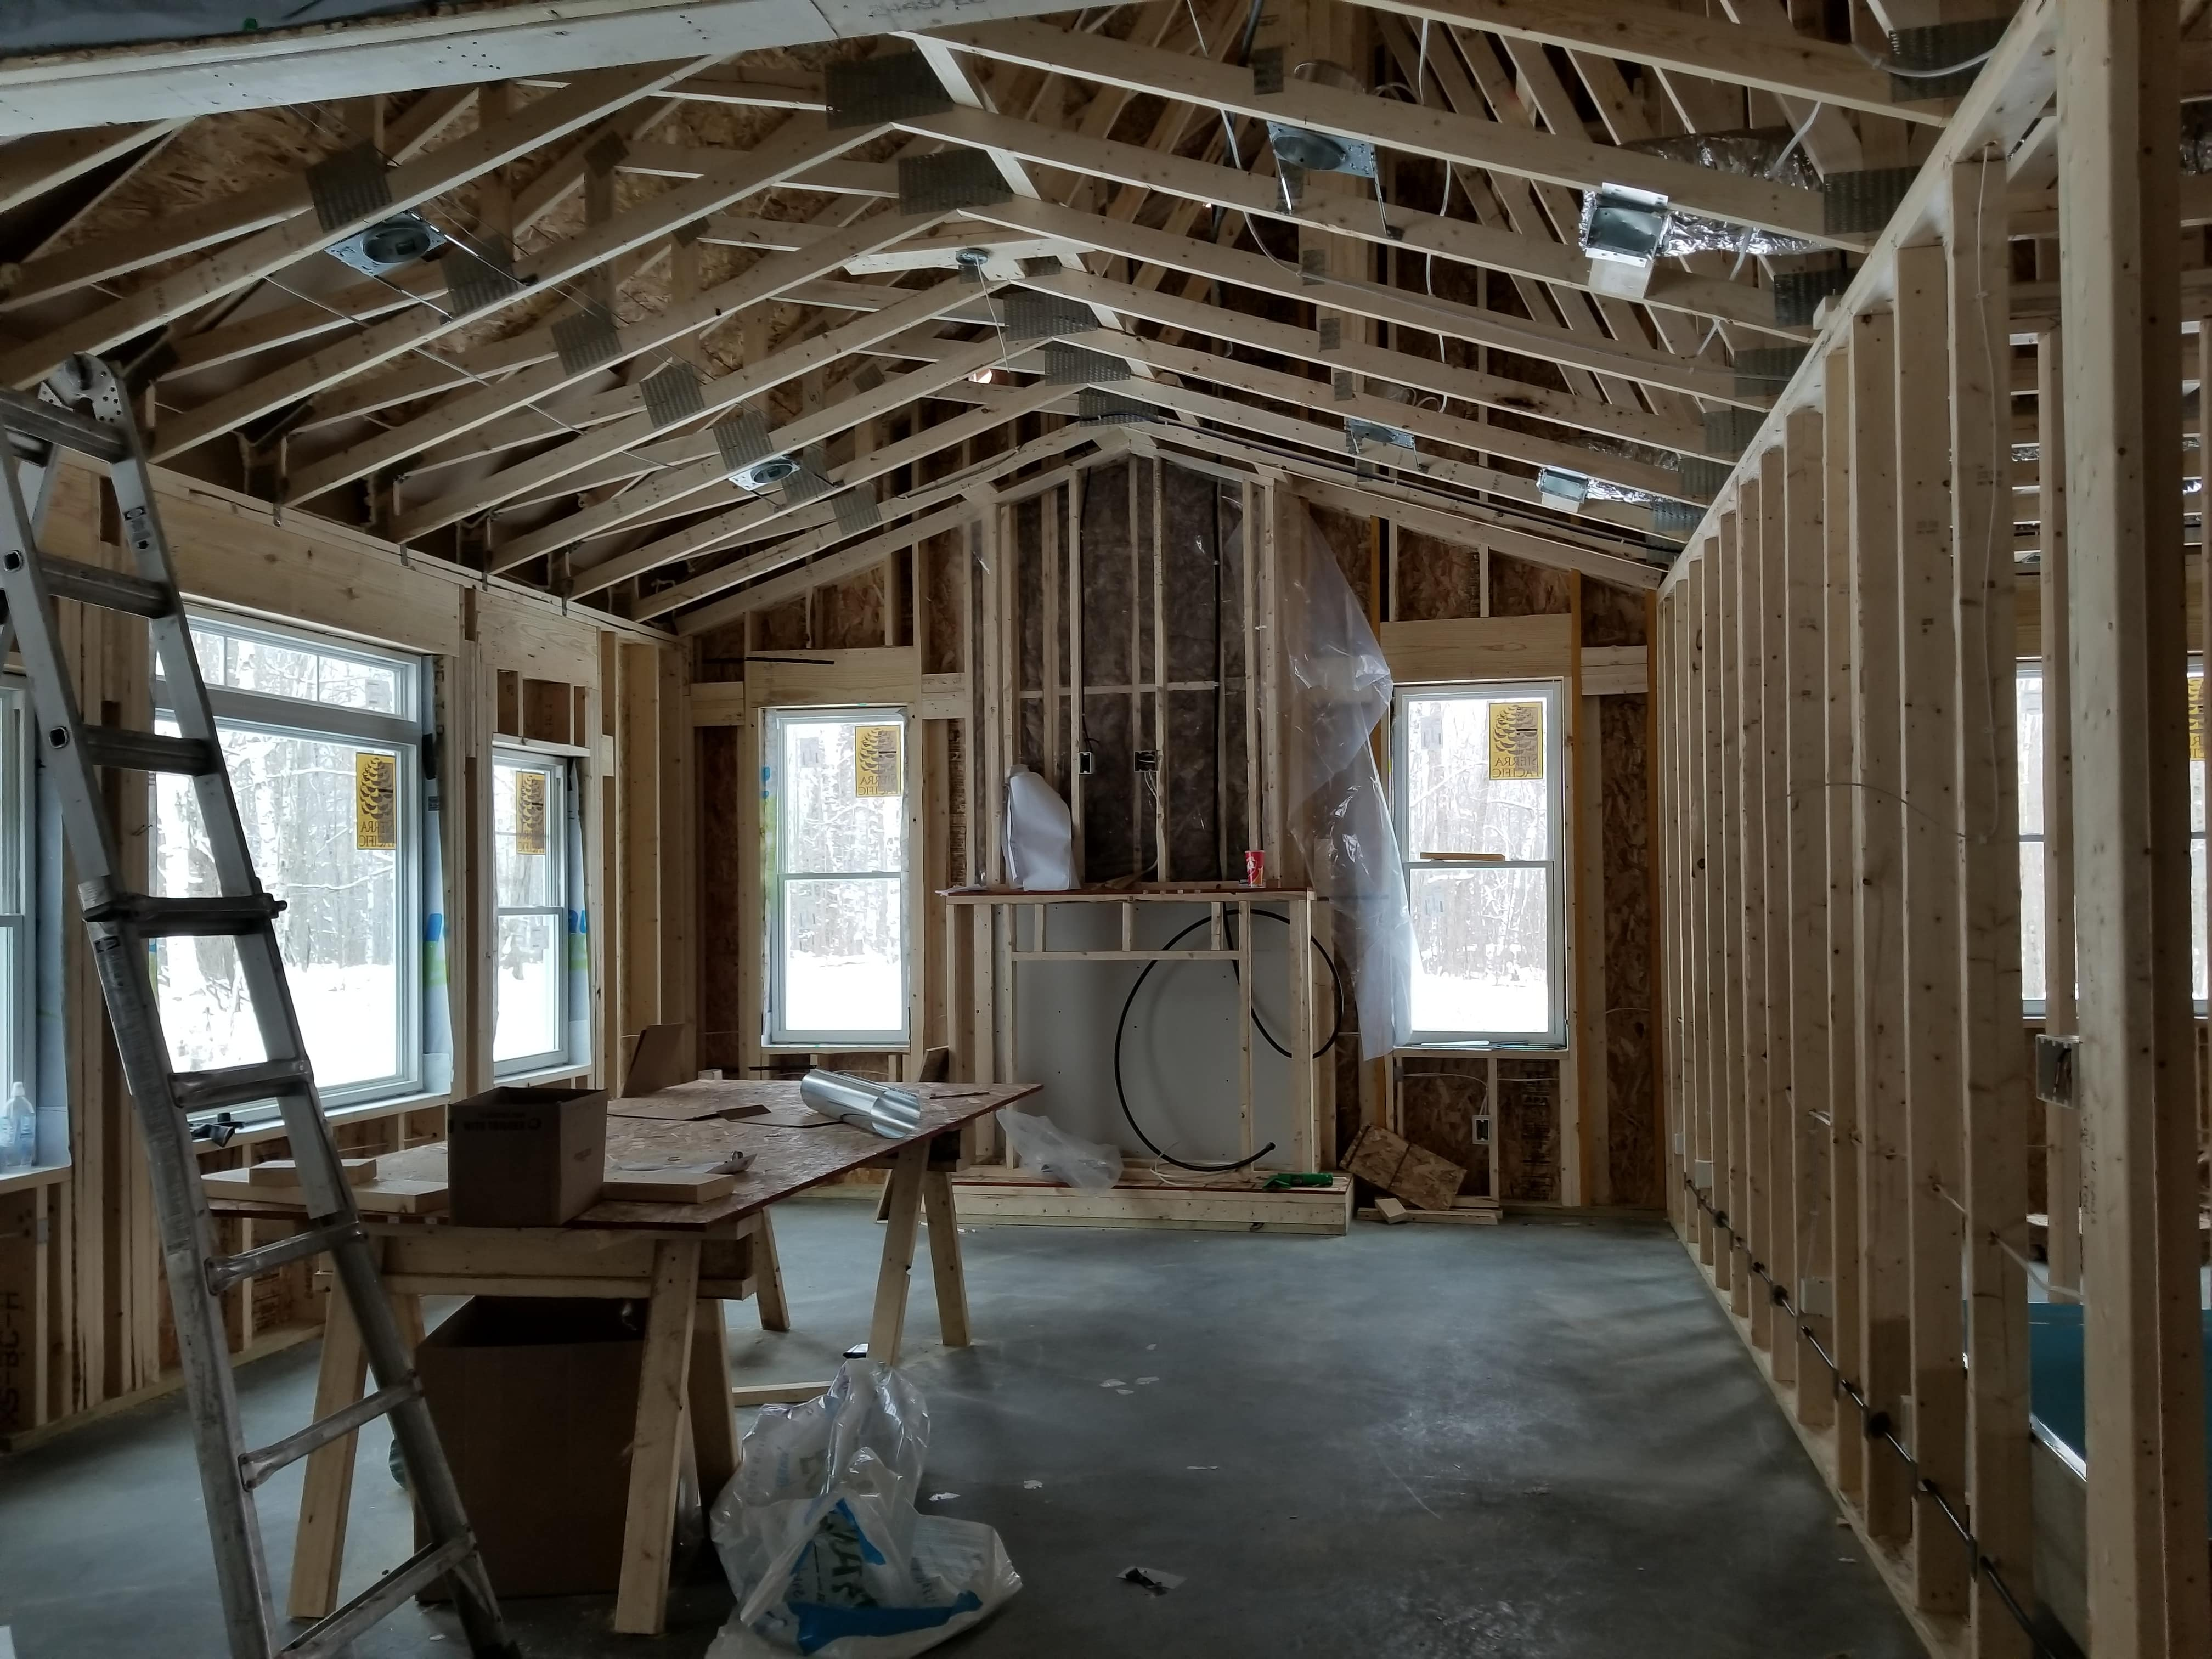 New Home Wiring Powerworks Inc Of House Efficient Light Fixtures Many Led Recess Can Lights Which Use Very Little Energy And Ensure That The Owners Will Have A Nice To Move Into